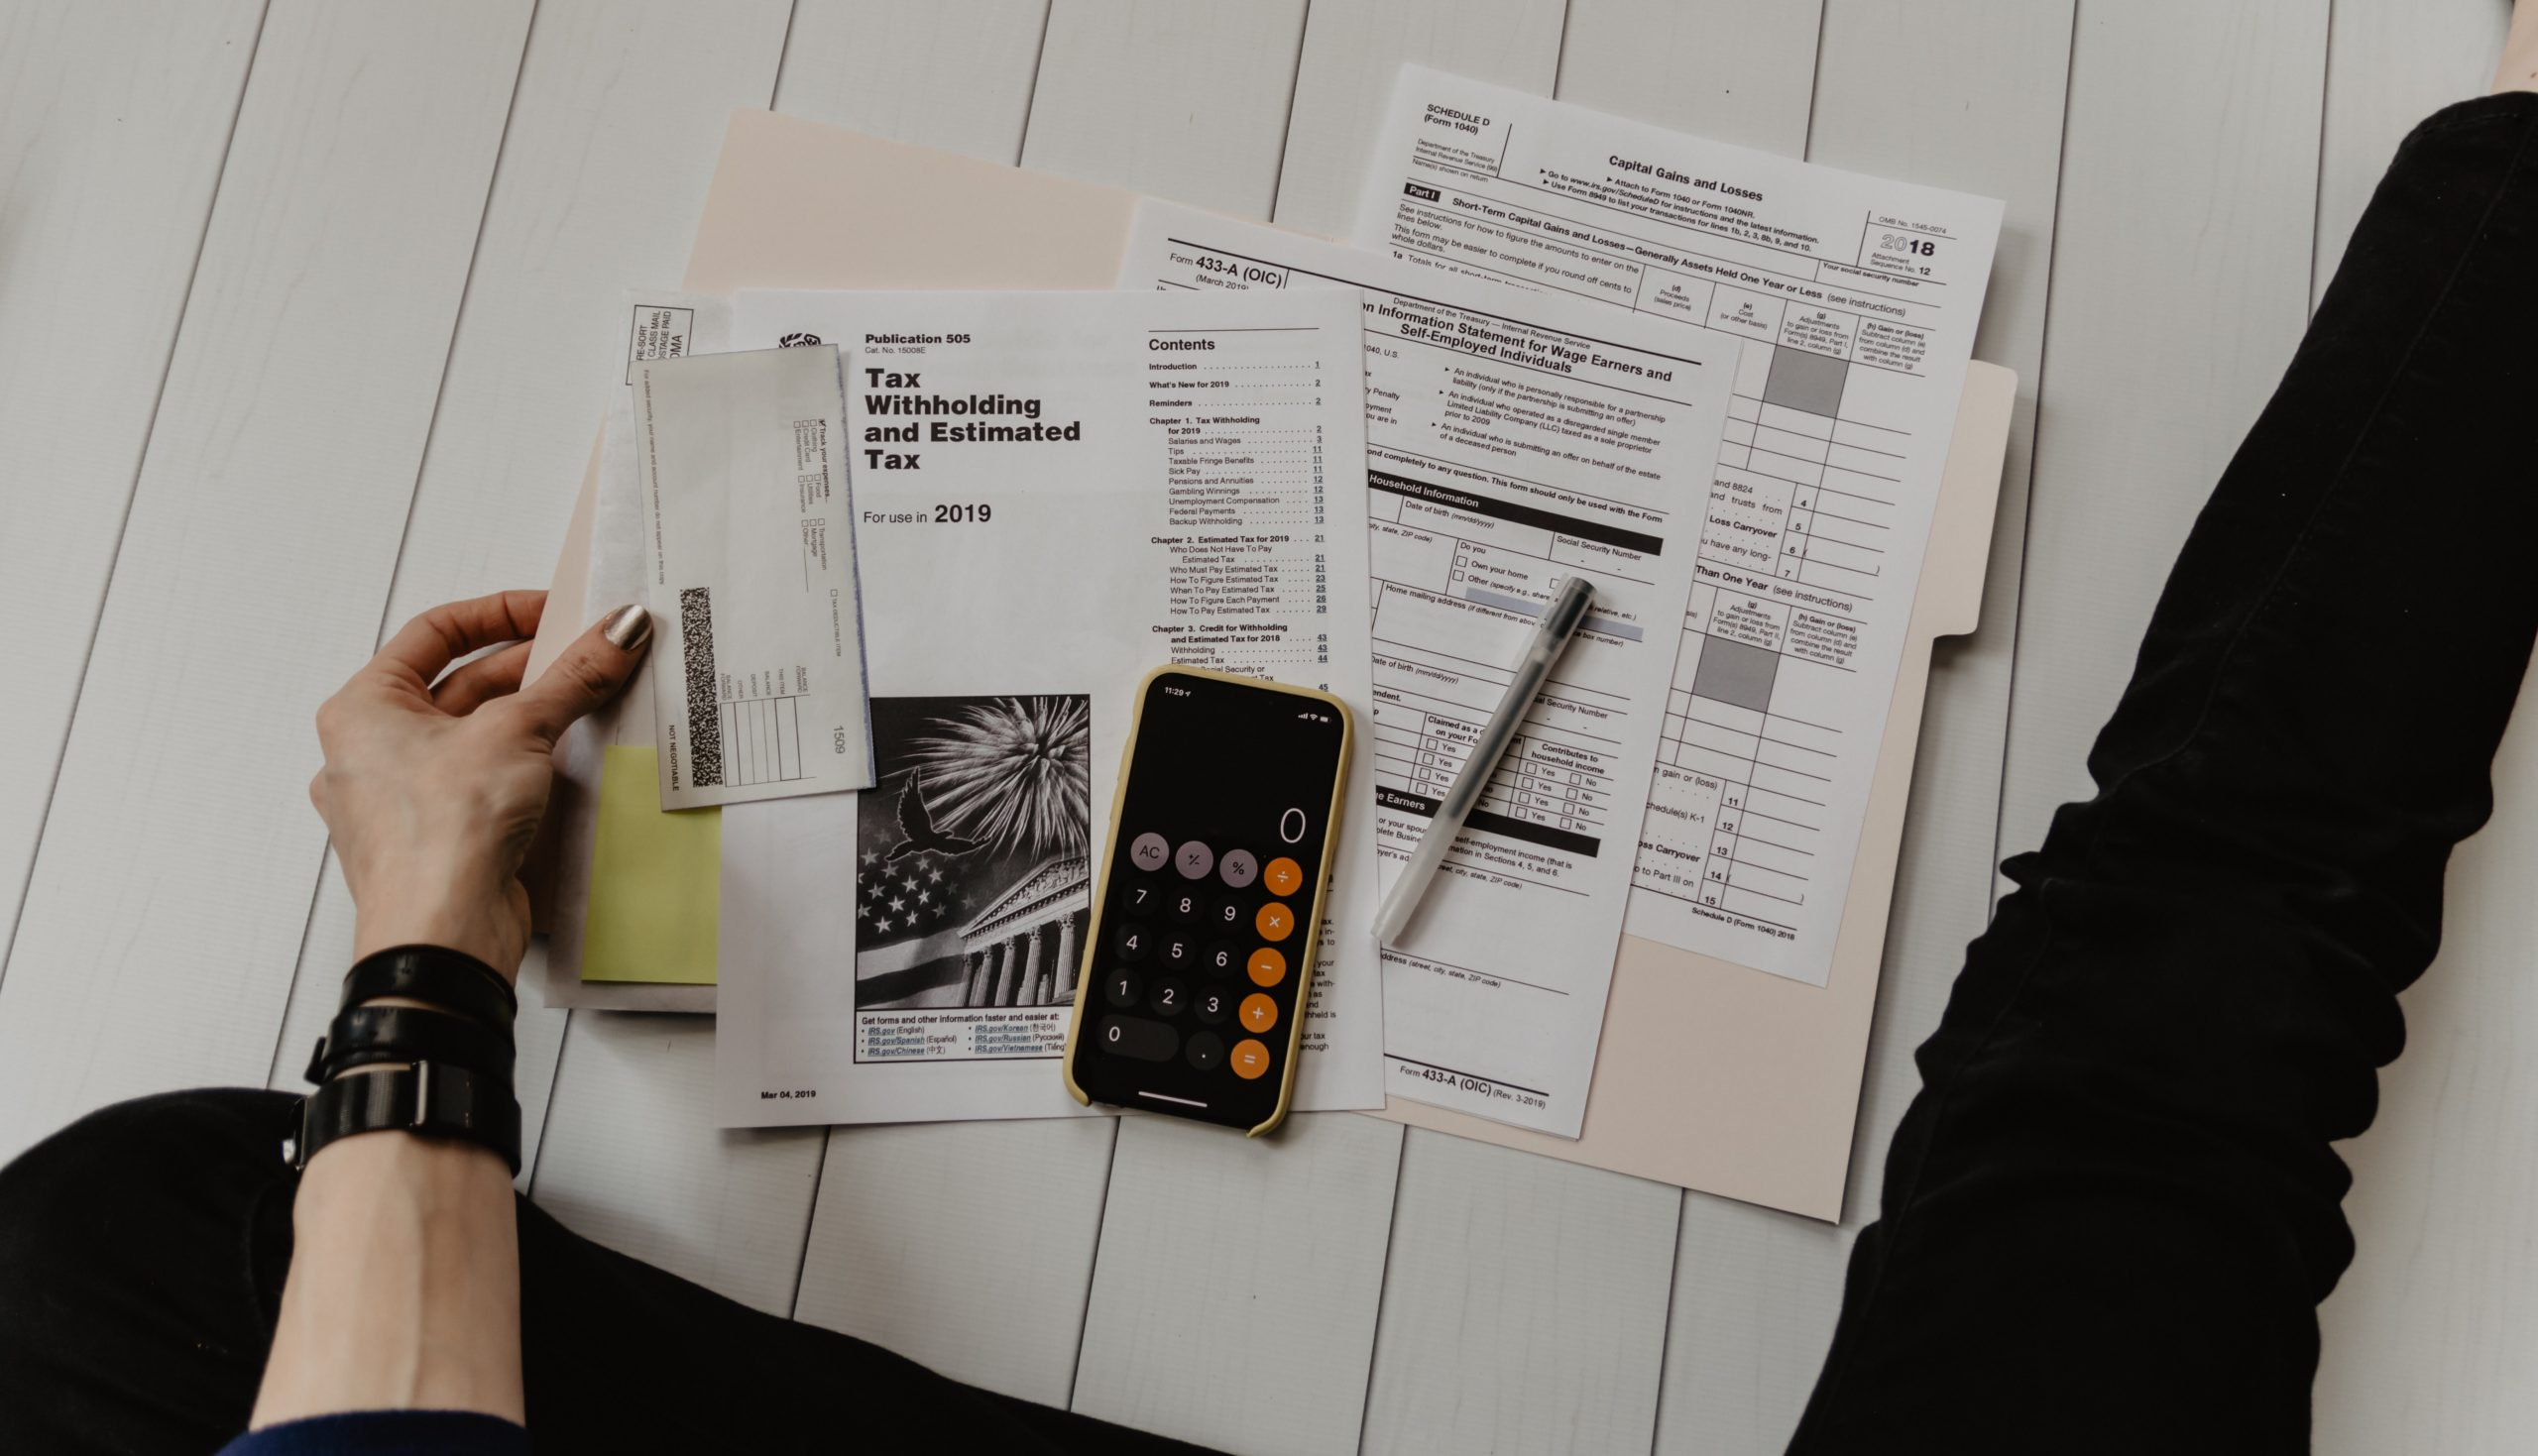 Getting accounts ready for tax time